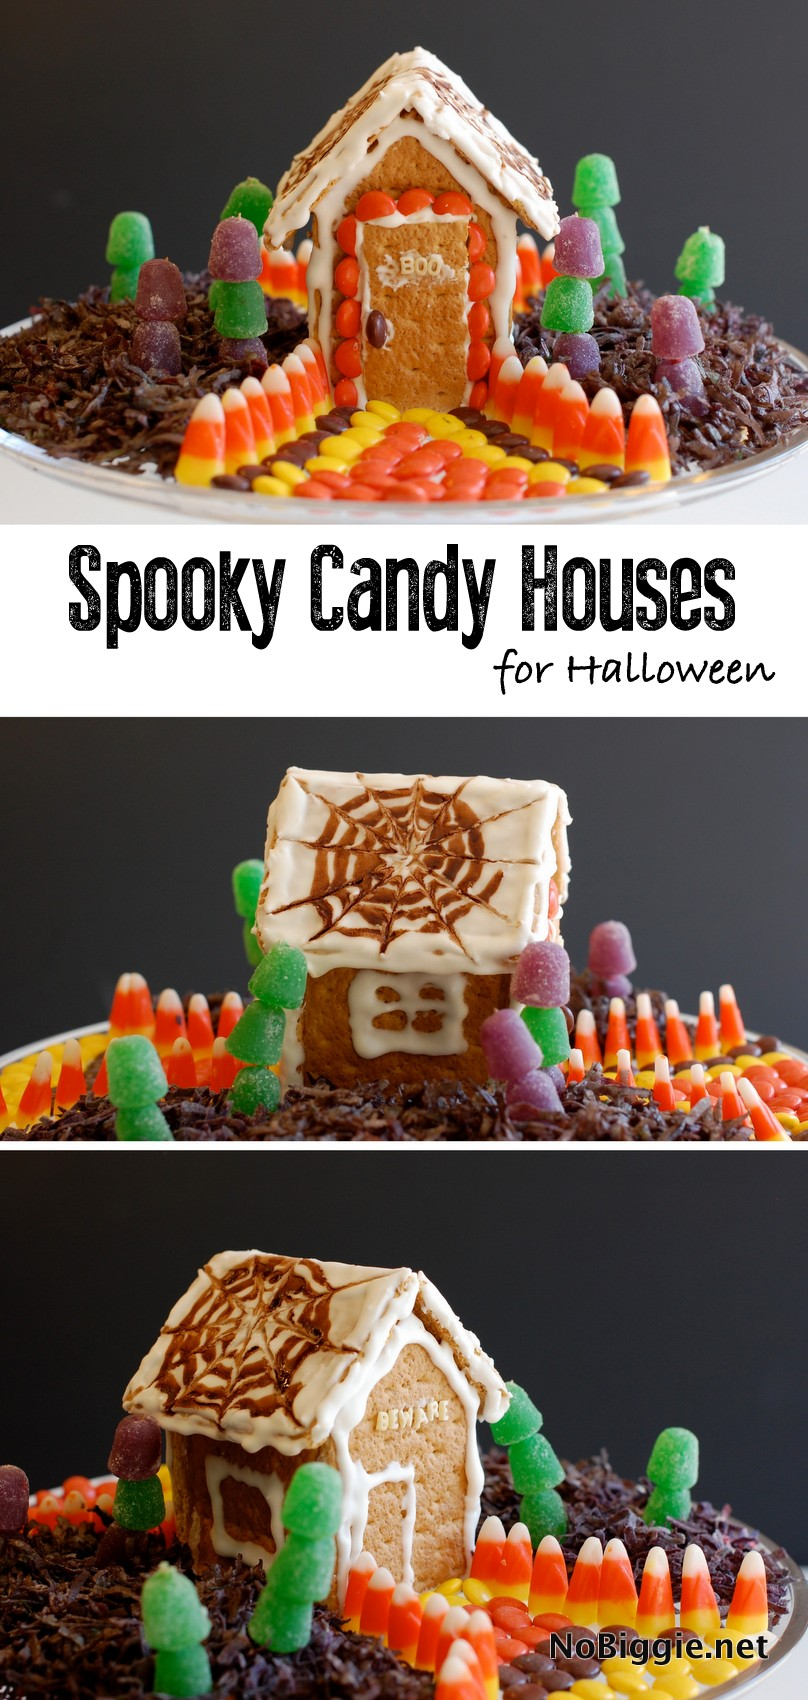 Candy Houses for Halloween | NoBiggie.net